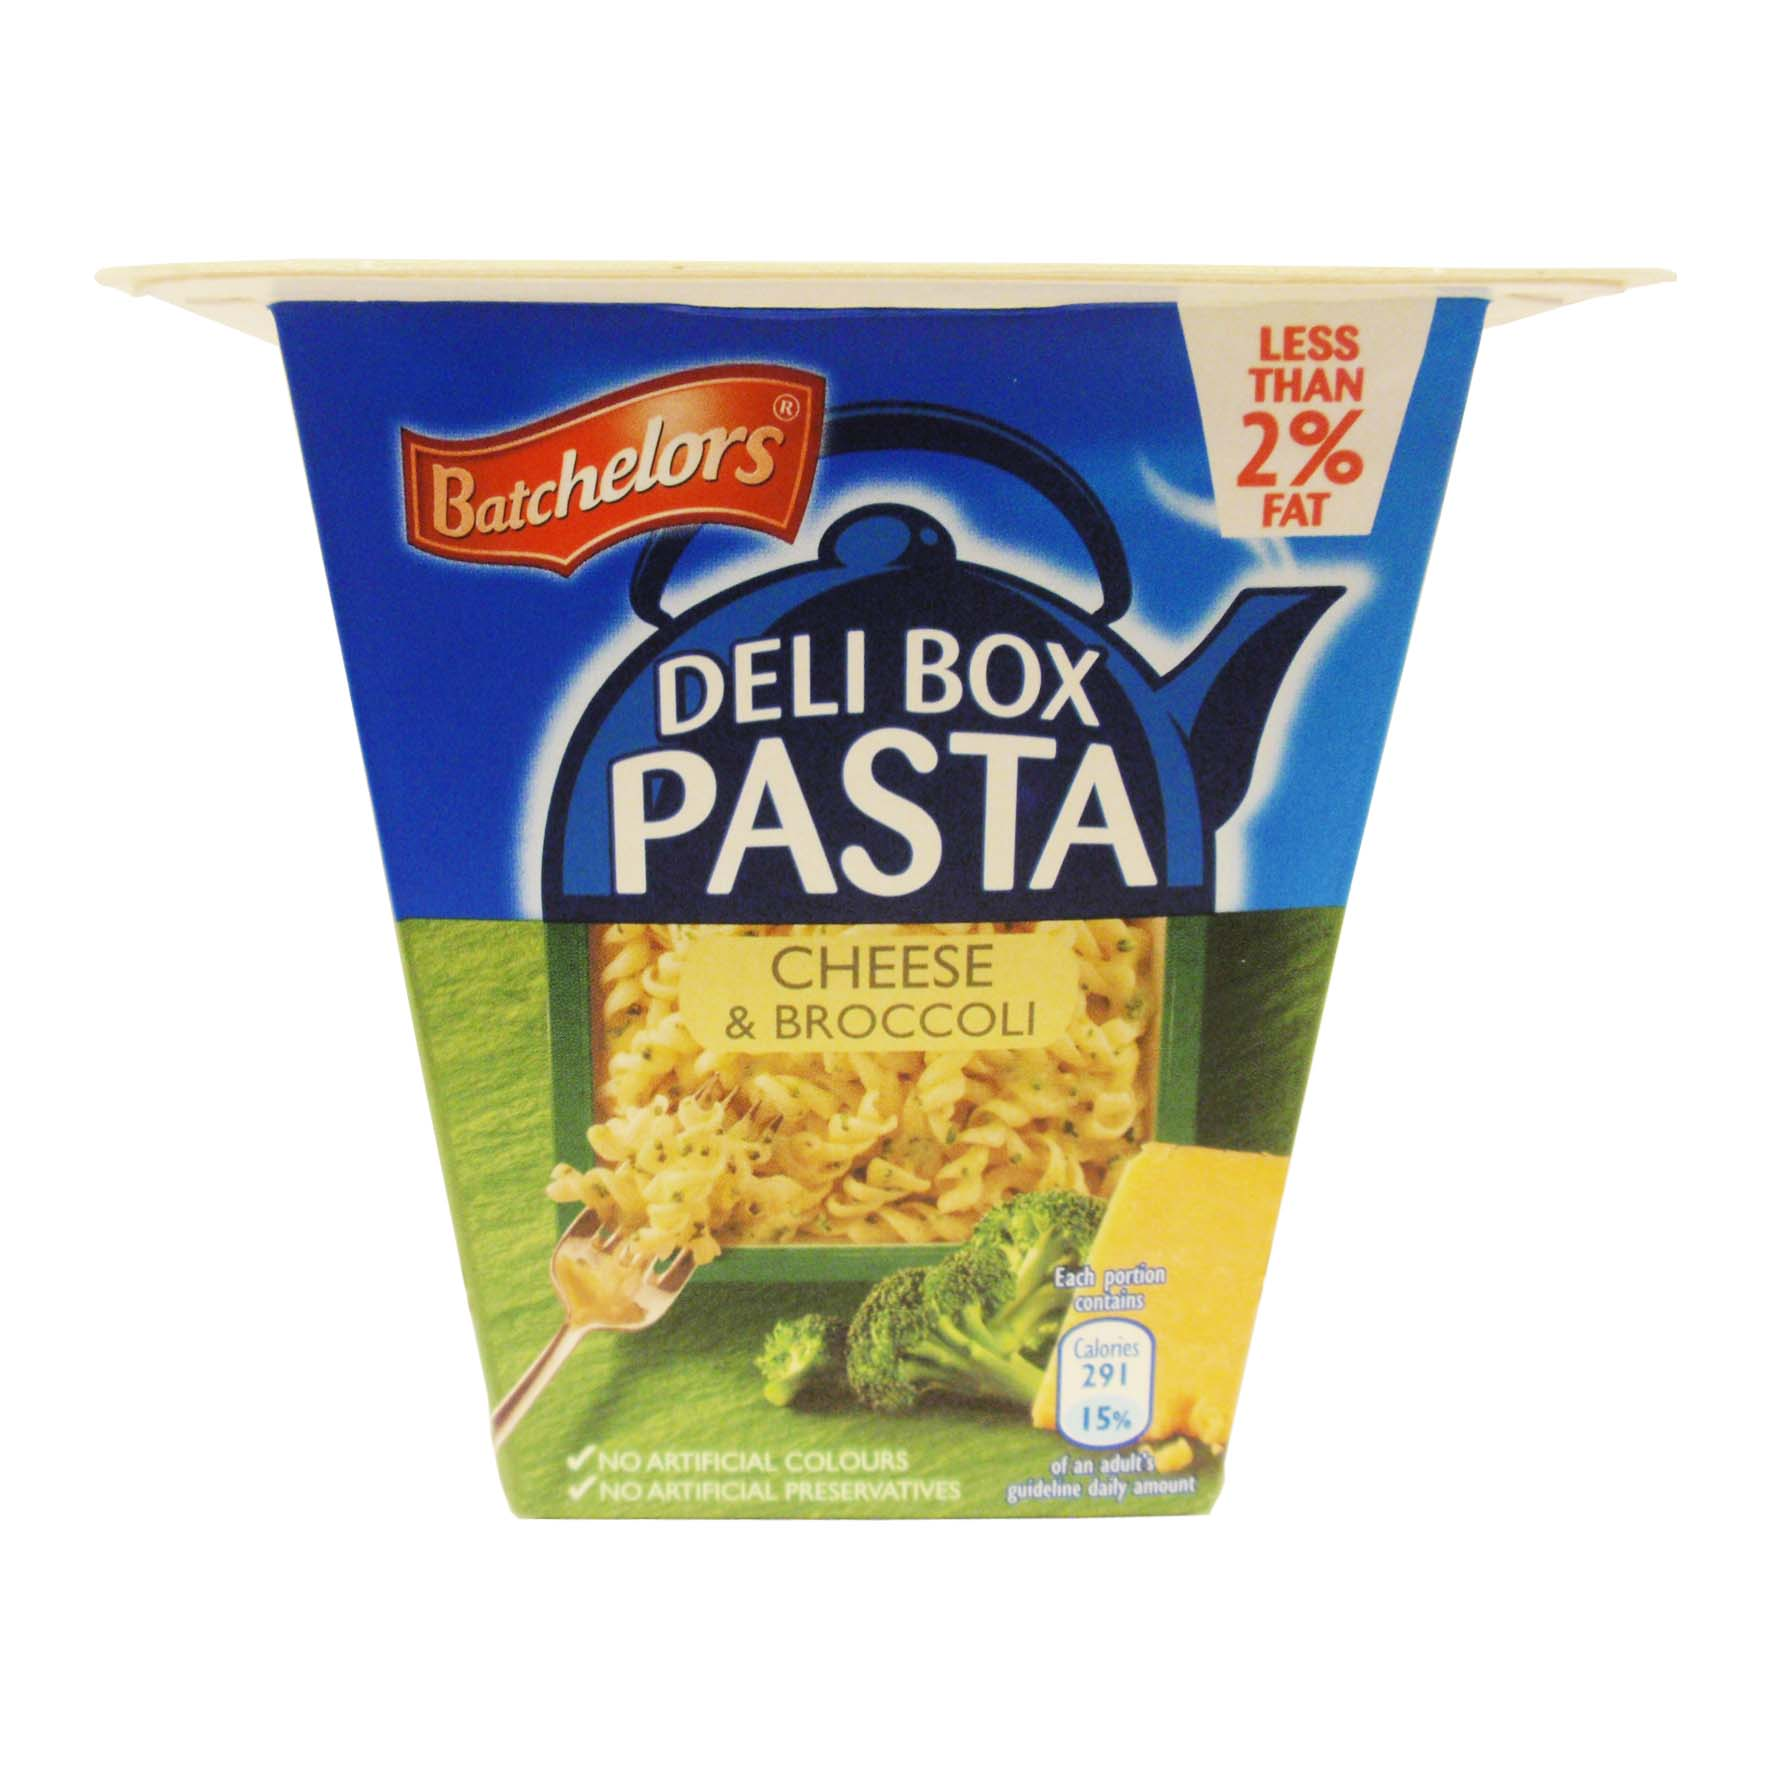 Batch deli box pasta queso-brocoli 75g